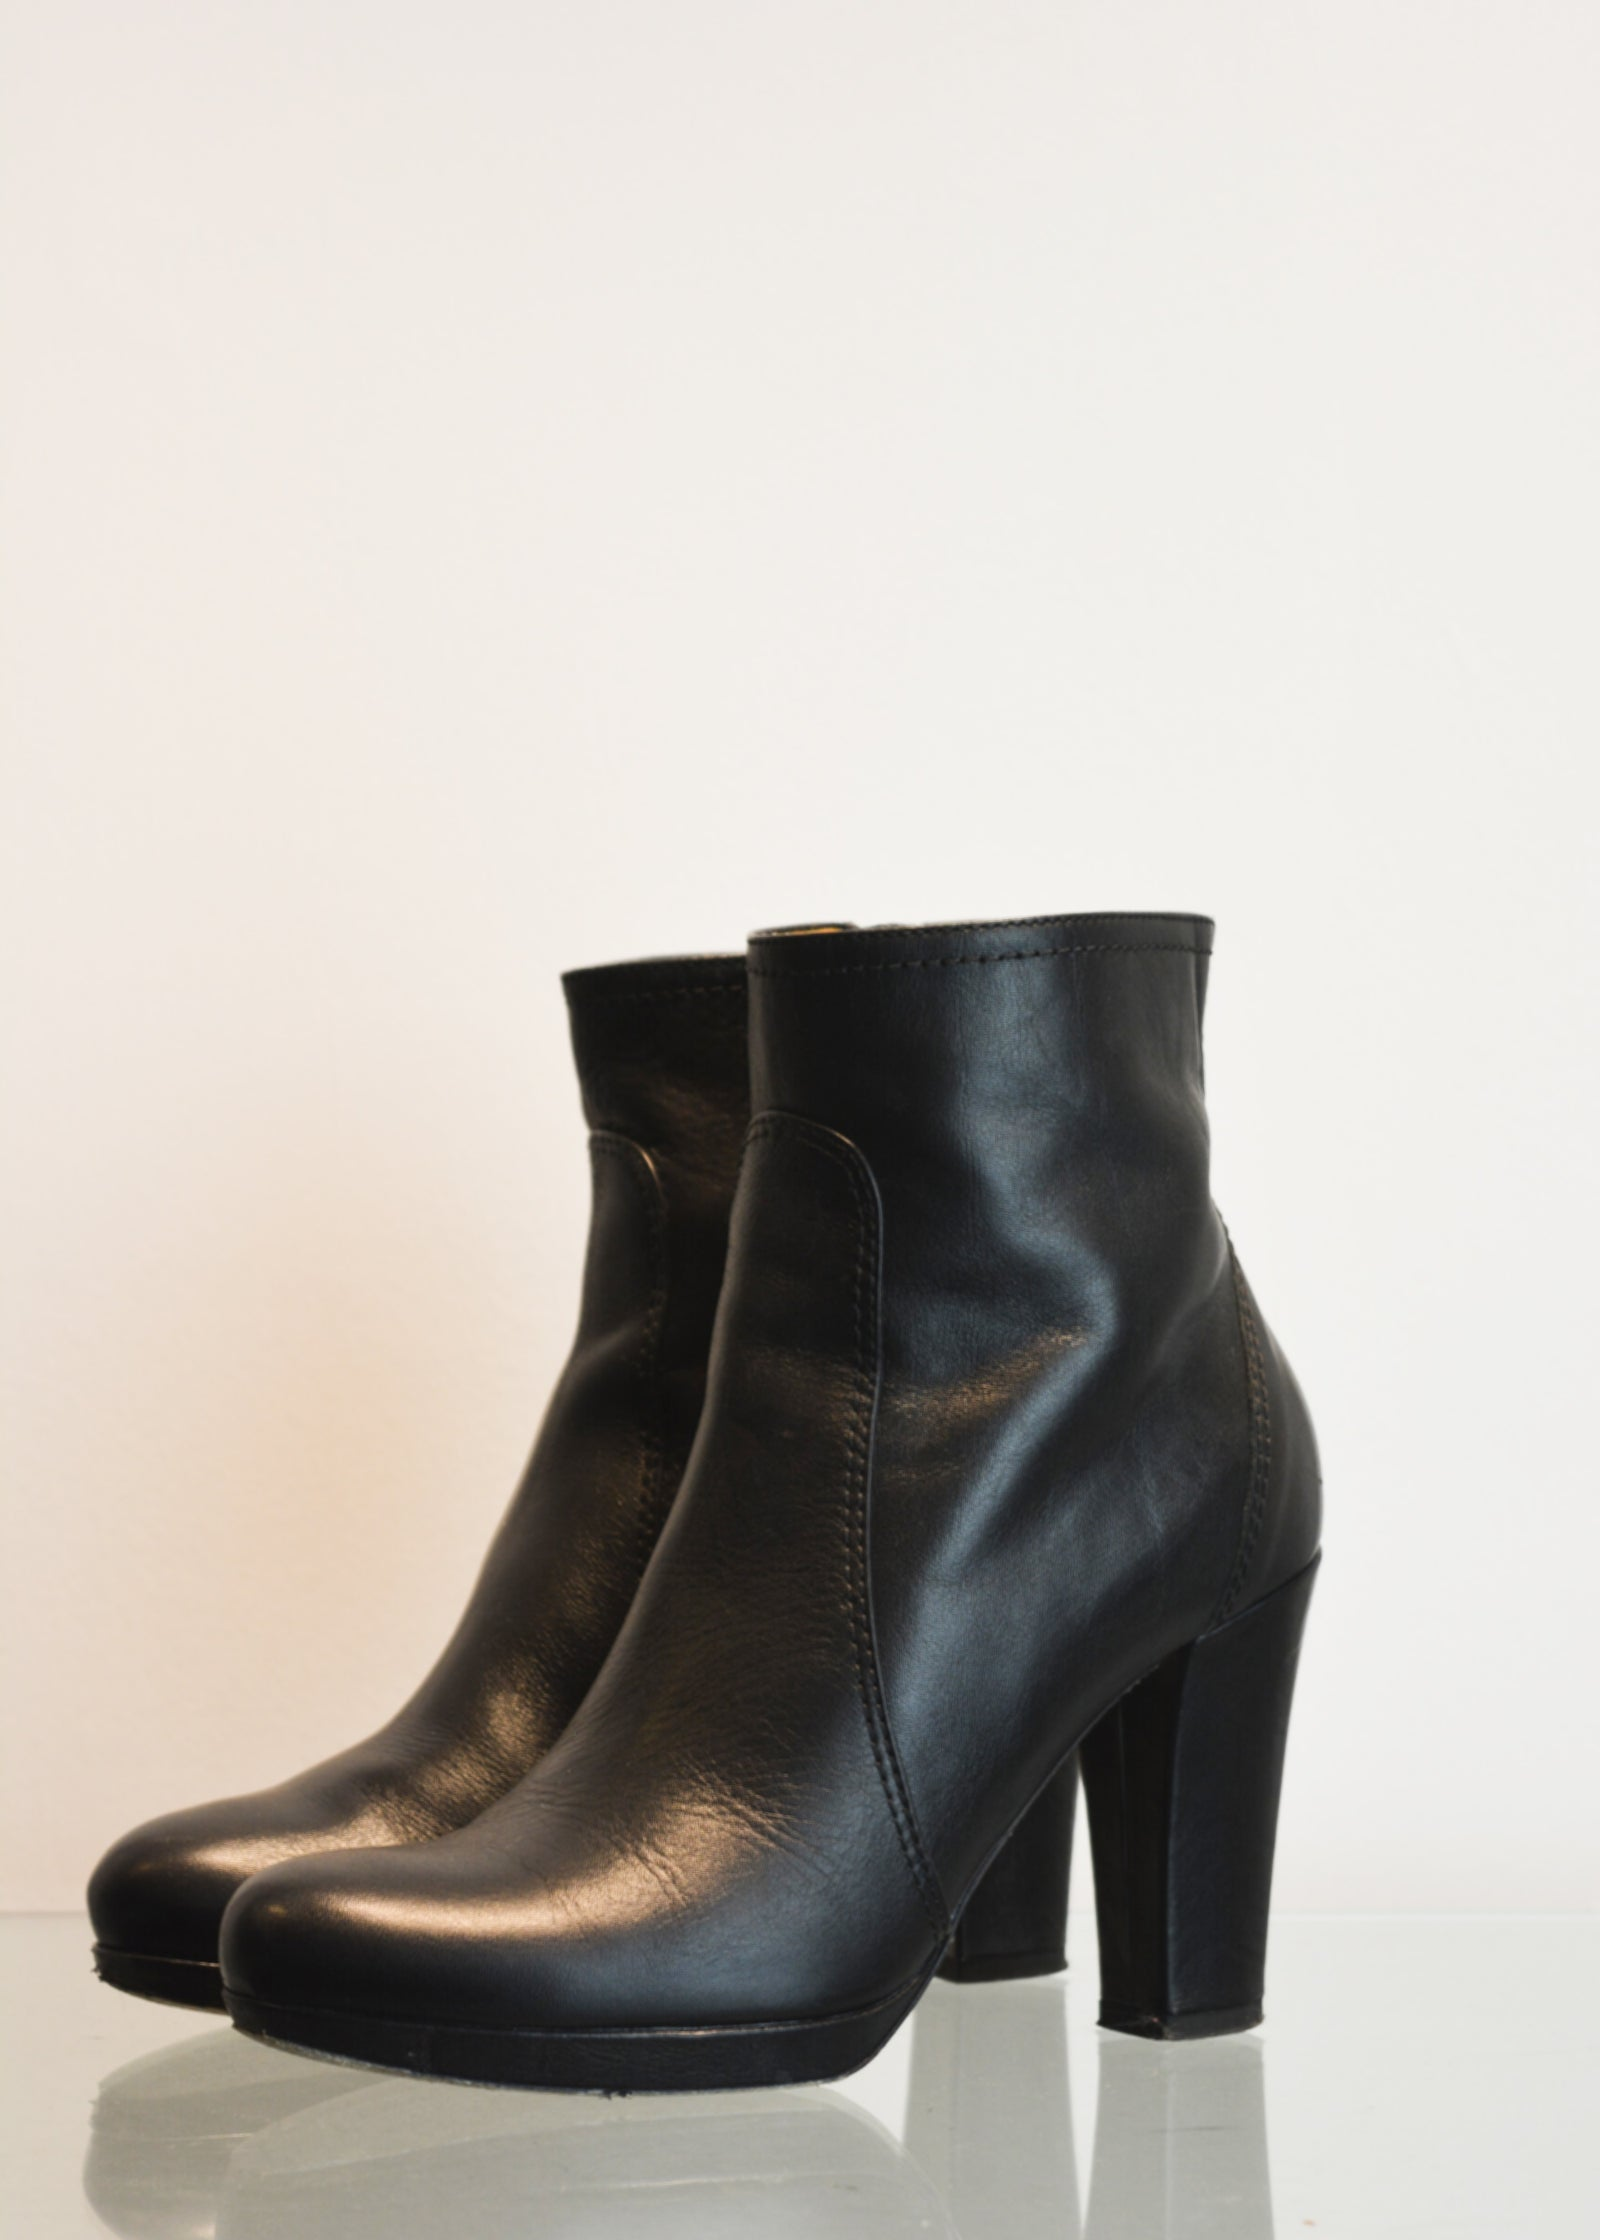 PREWORN | Preloved - 'HOBBS' Ankle Boot - Size 5 UK